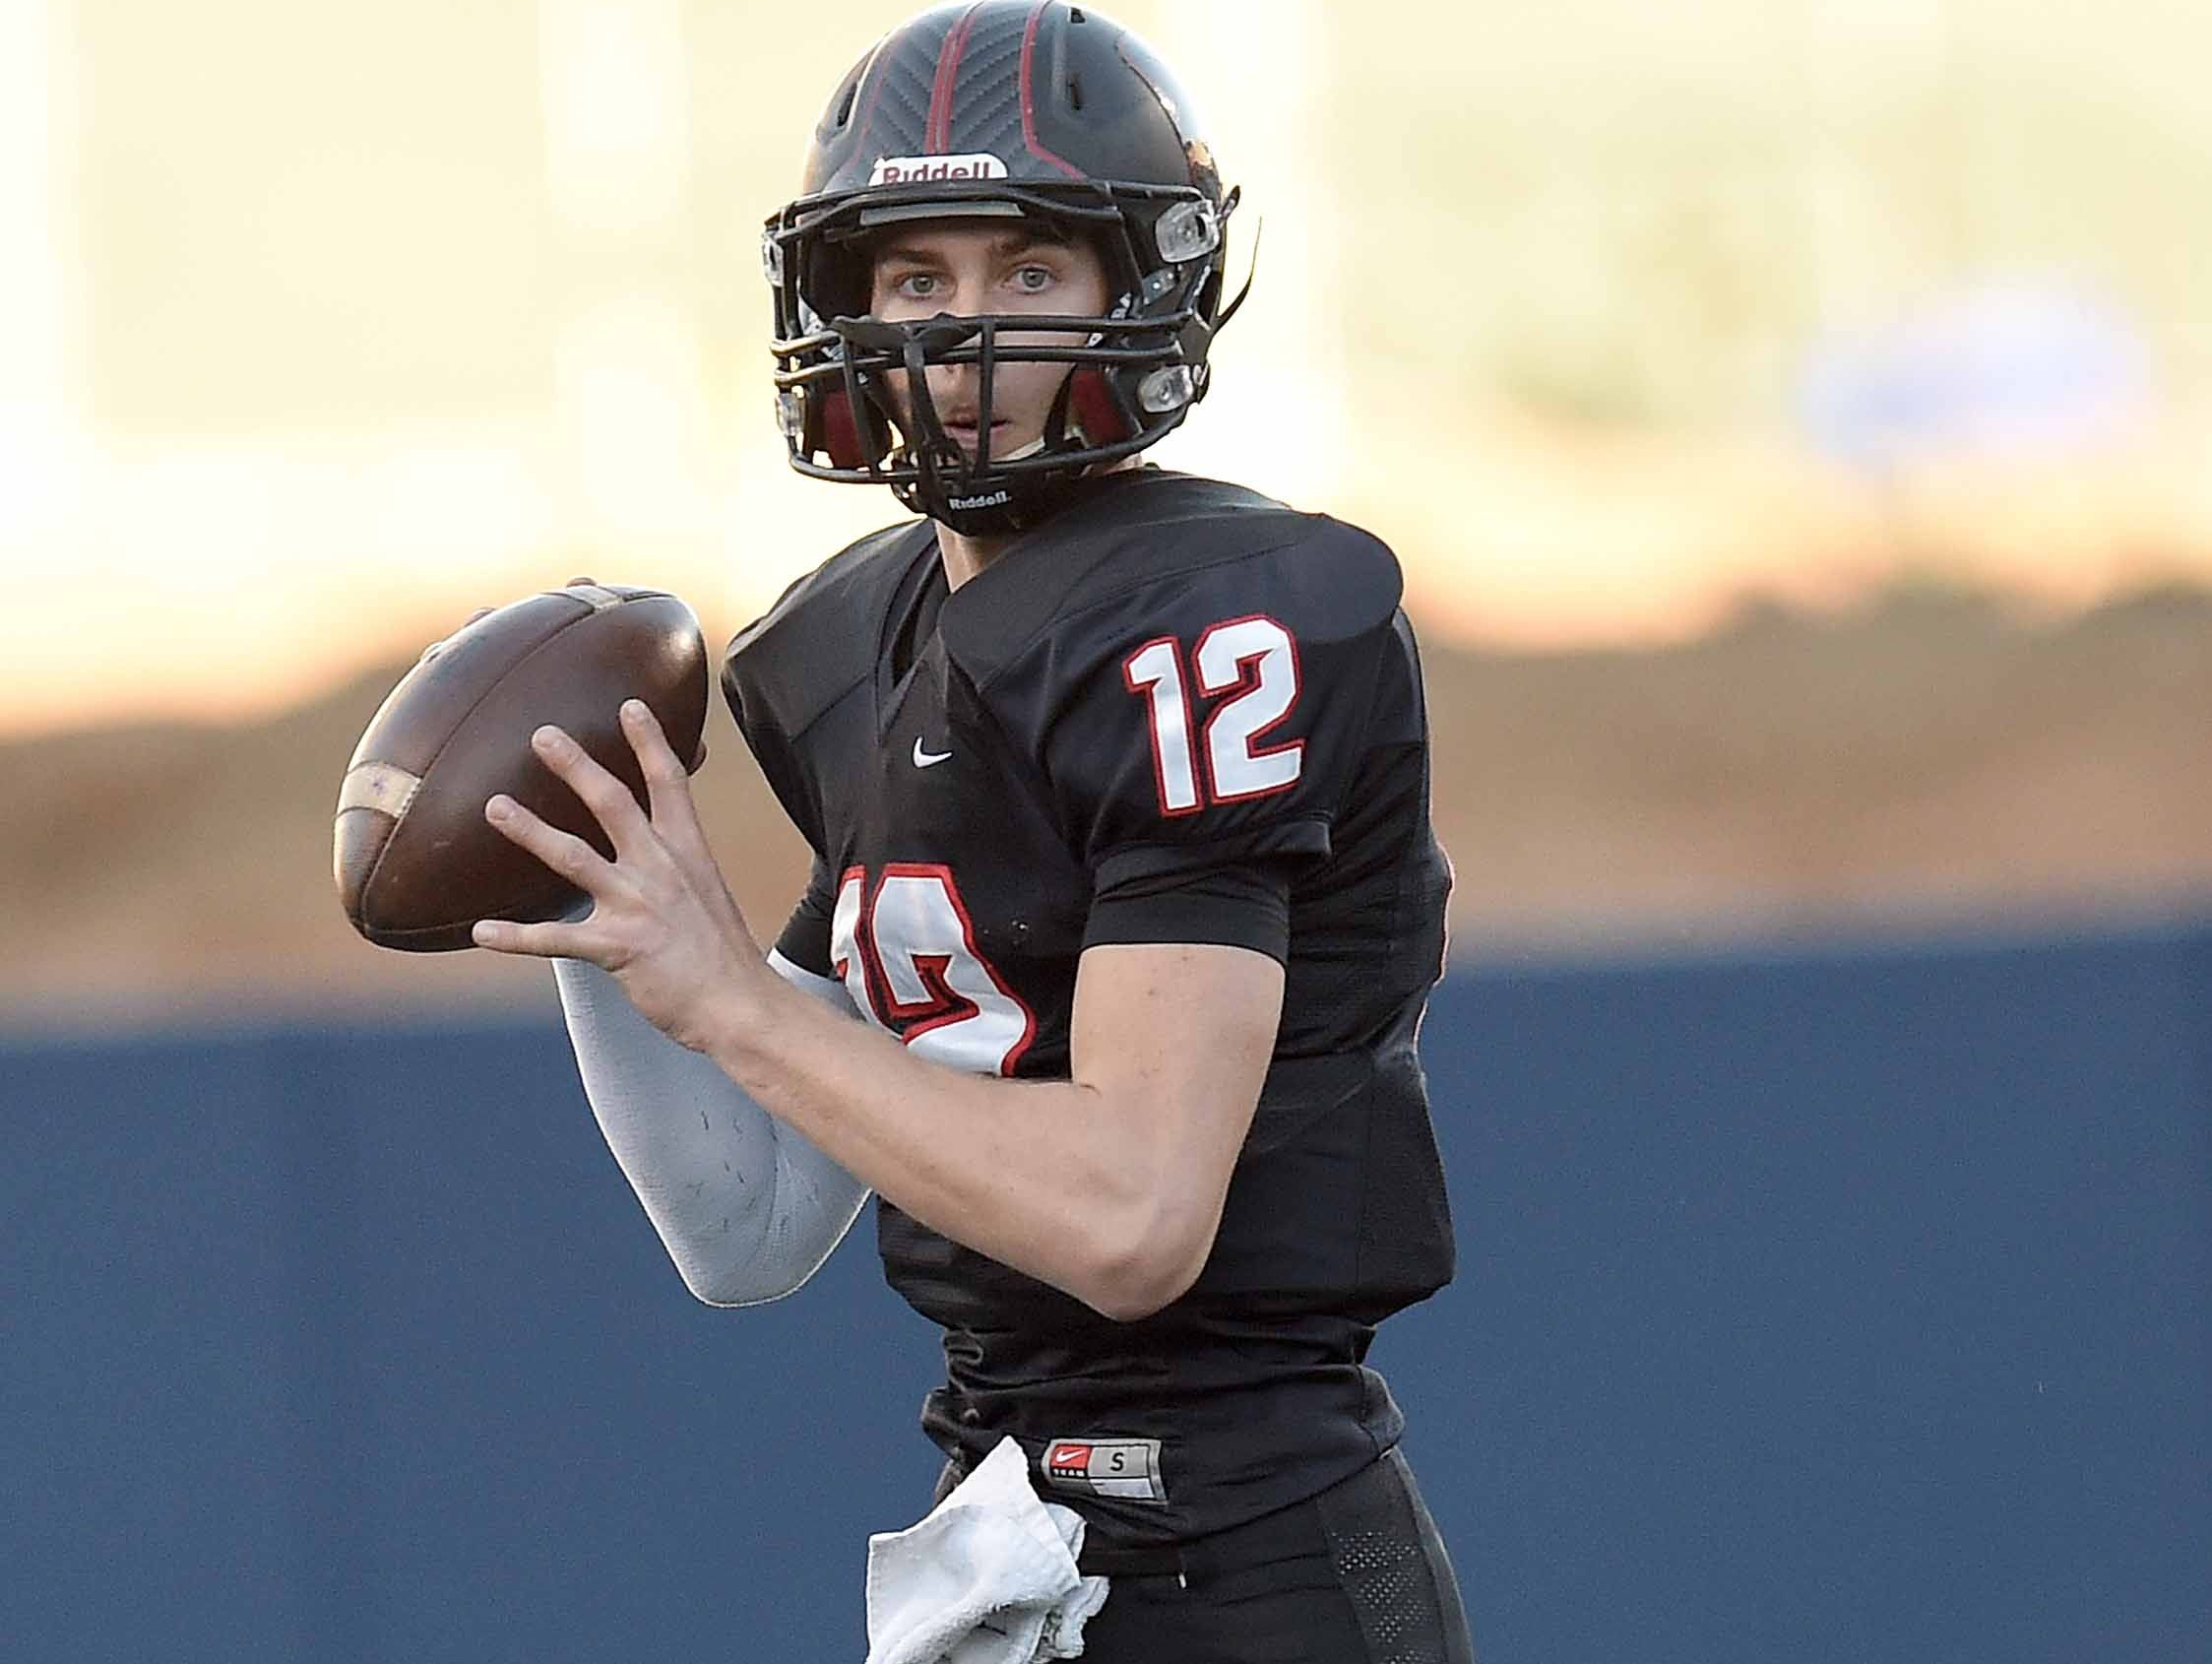 St. Stanislaus senior Myles Brennan is the top rated pro-style QB in the state.